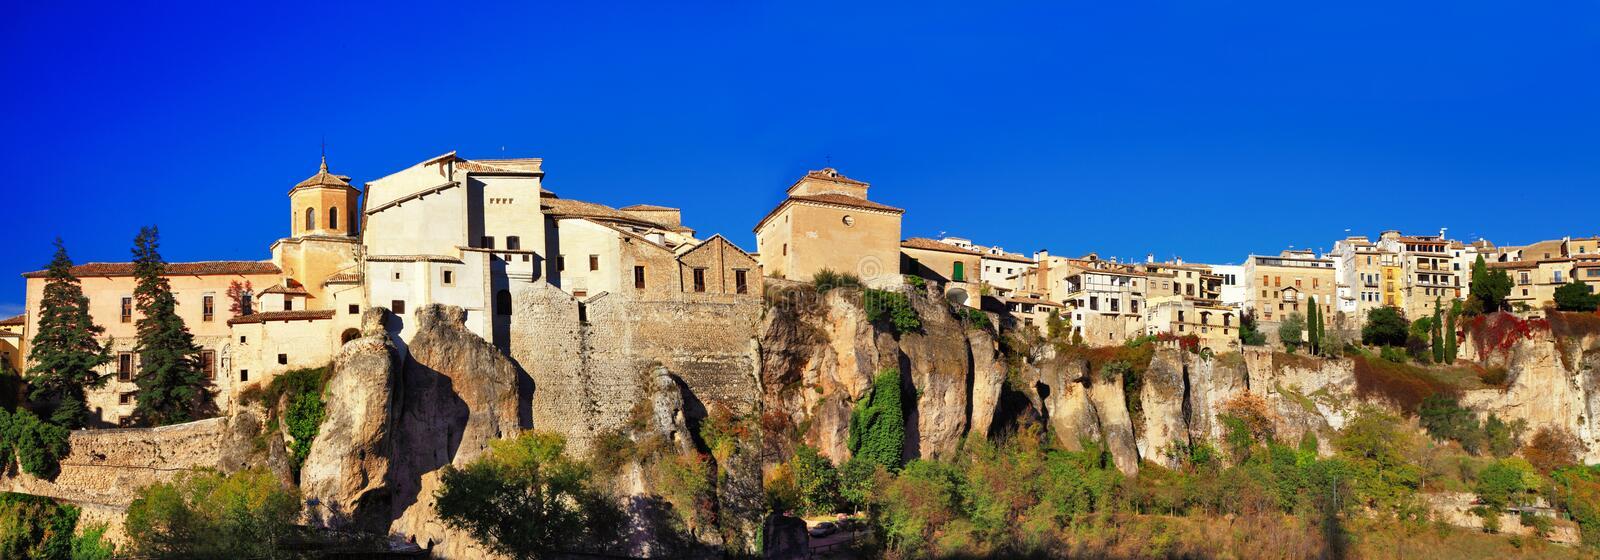 Panorama de Cuenca - Spain fotografia de stock royalty free